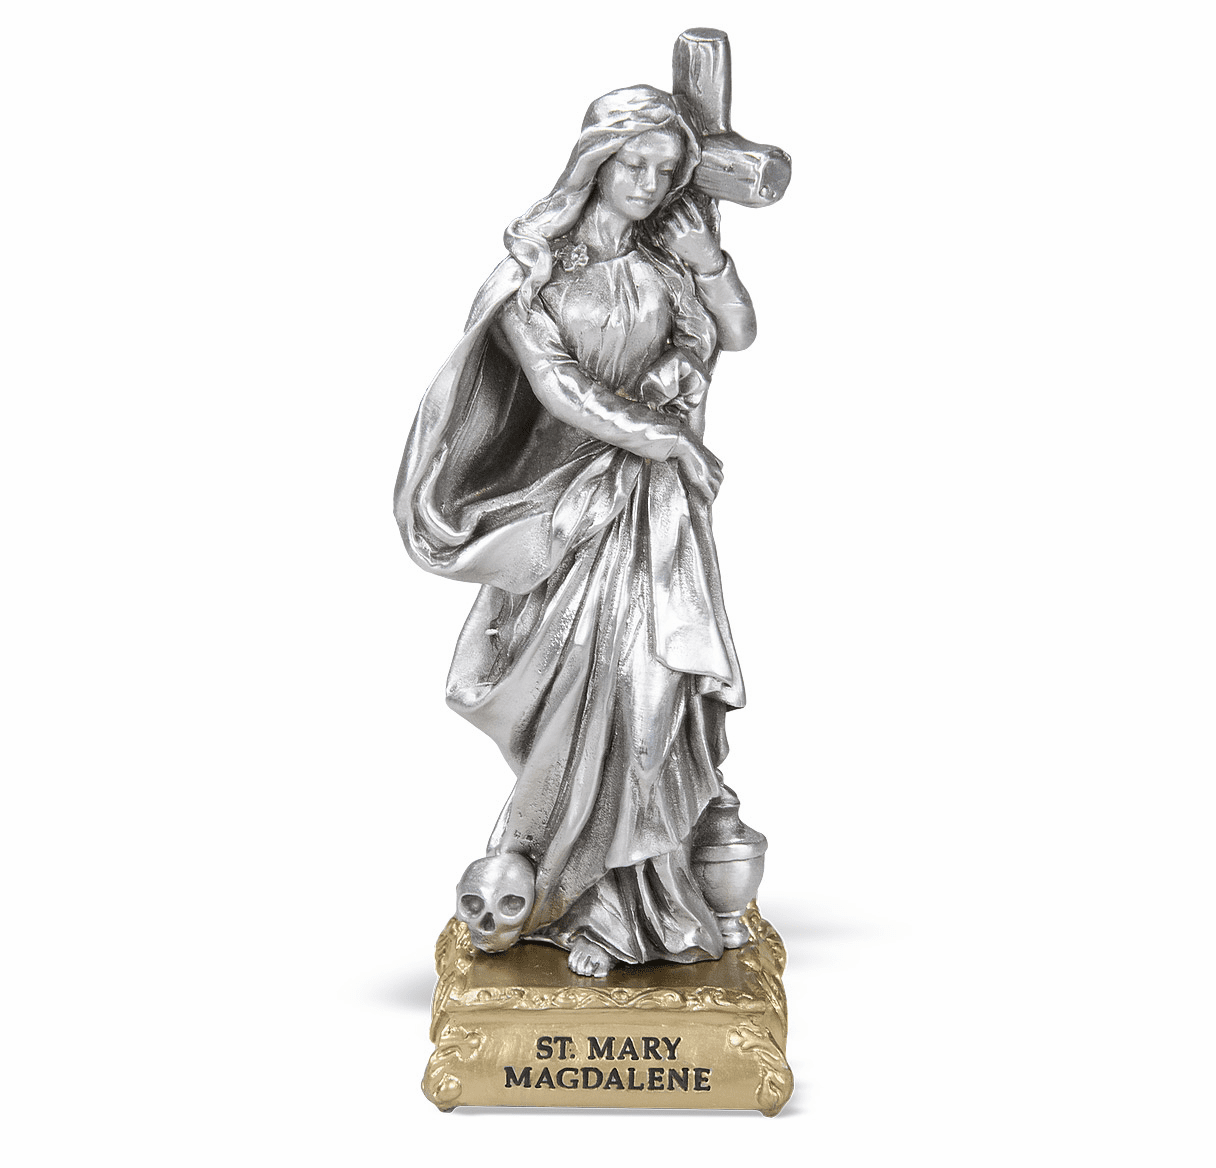 St Mary Magdalene Pewter Statue on Gold Tone Base by Hirten